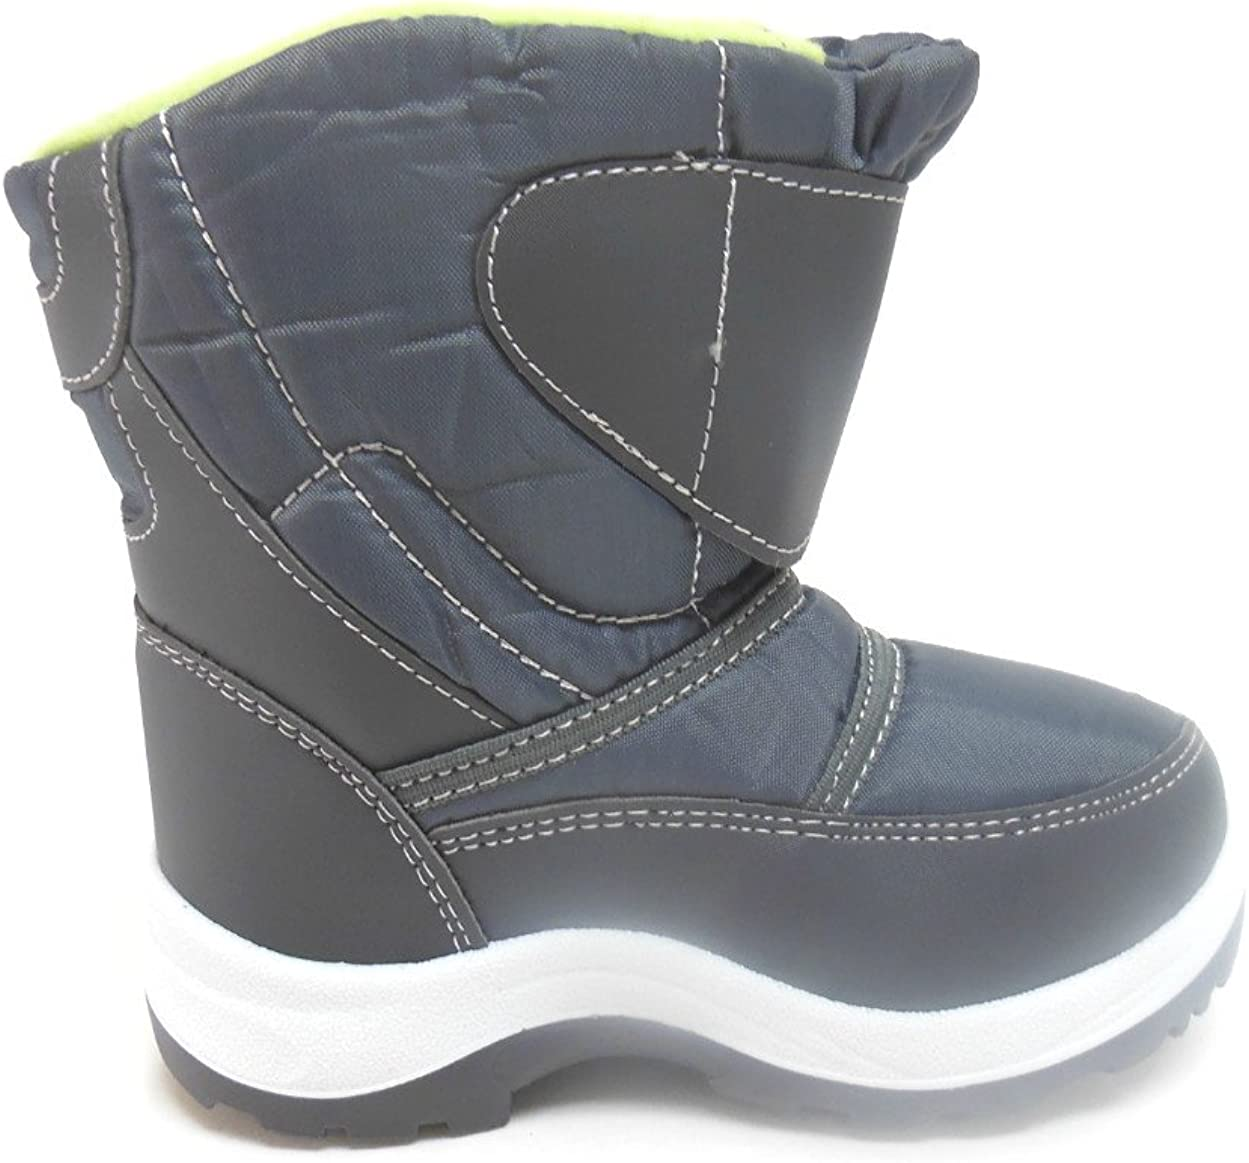 ADORABABY Toddler Boys Faux Fur Lined Winter Snow Boots